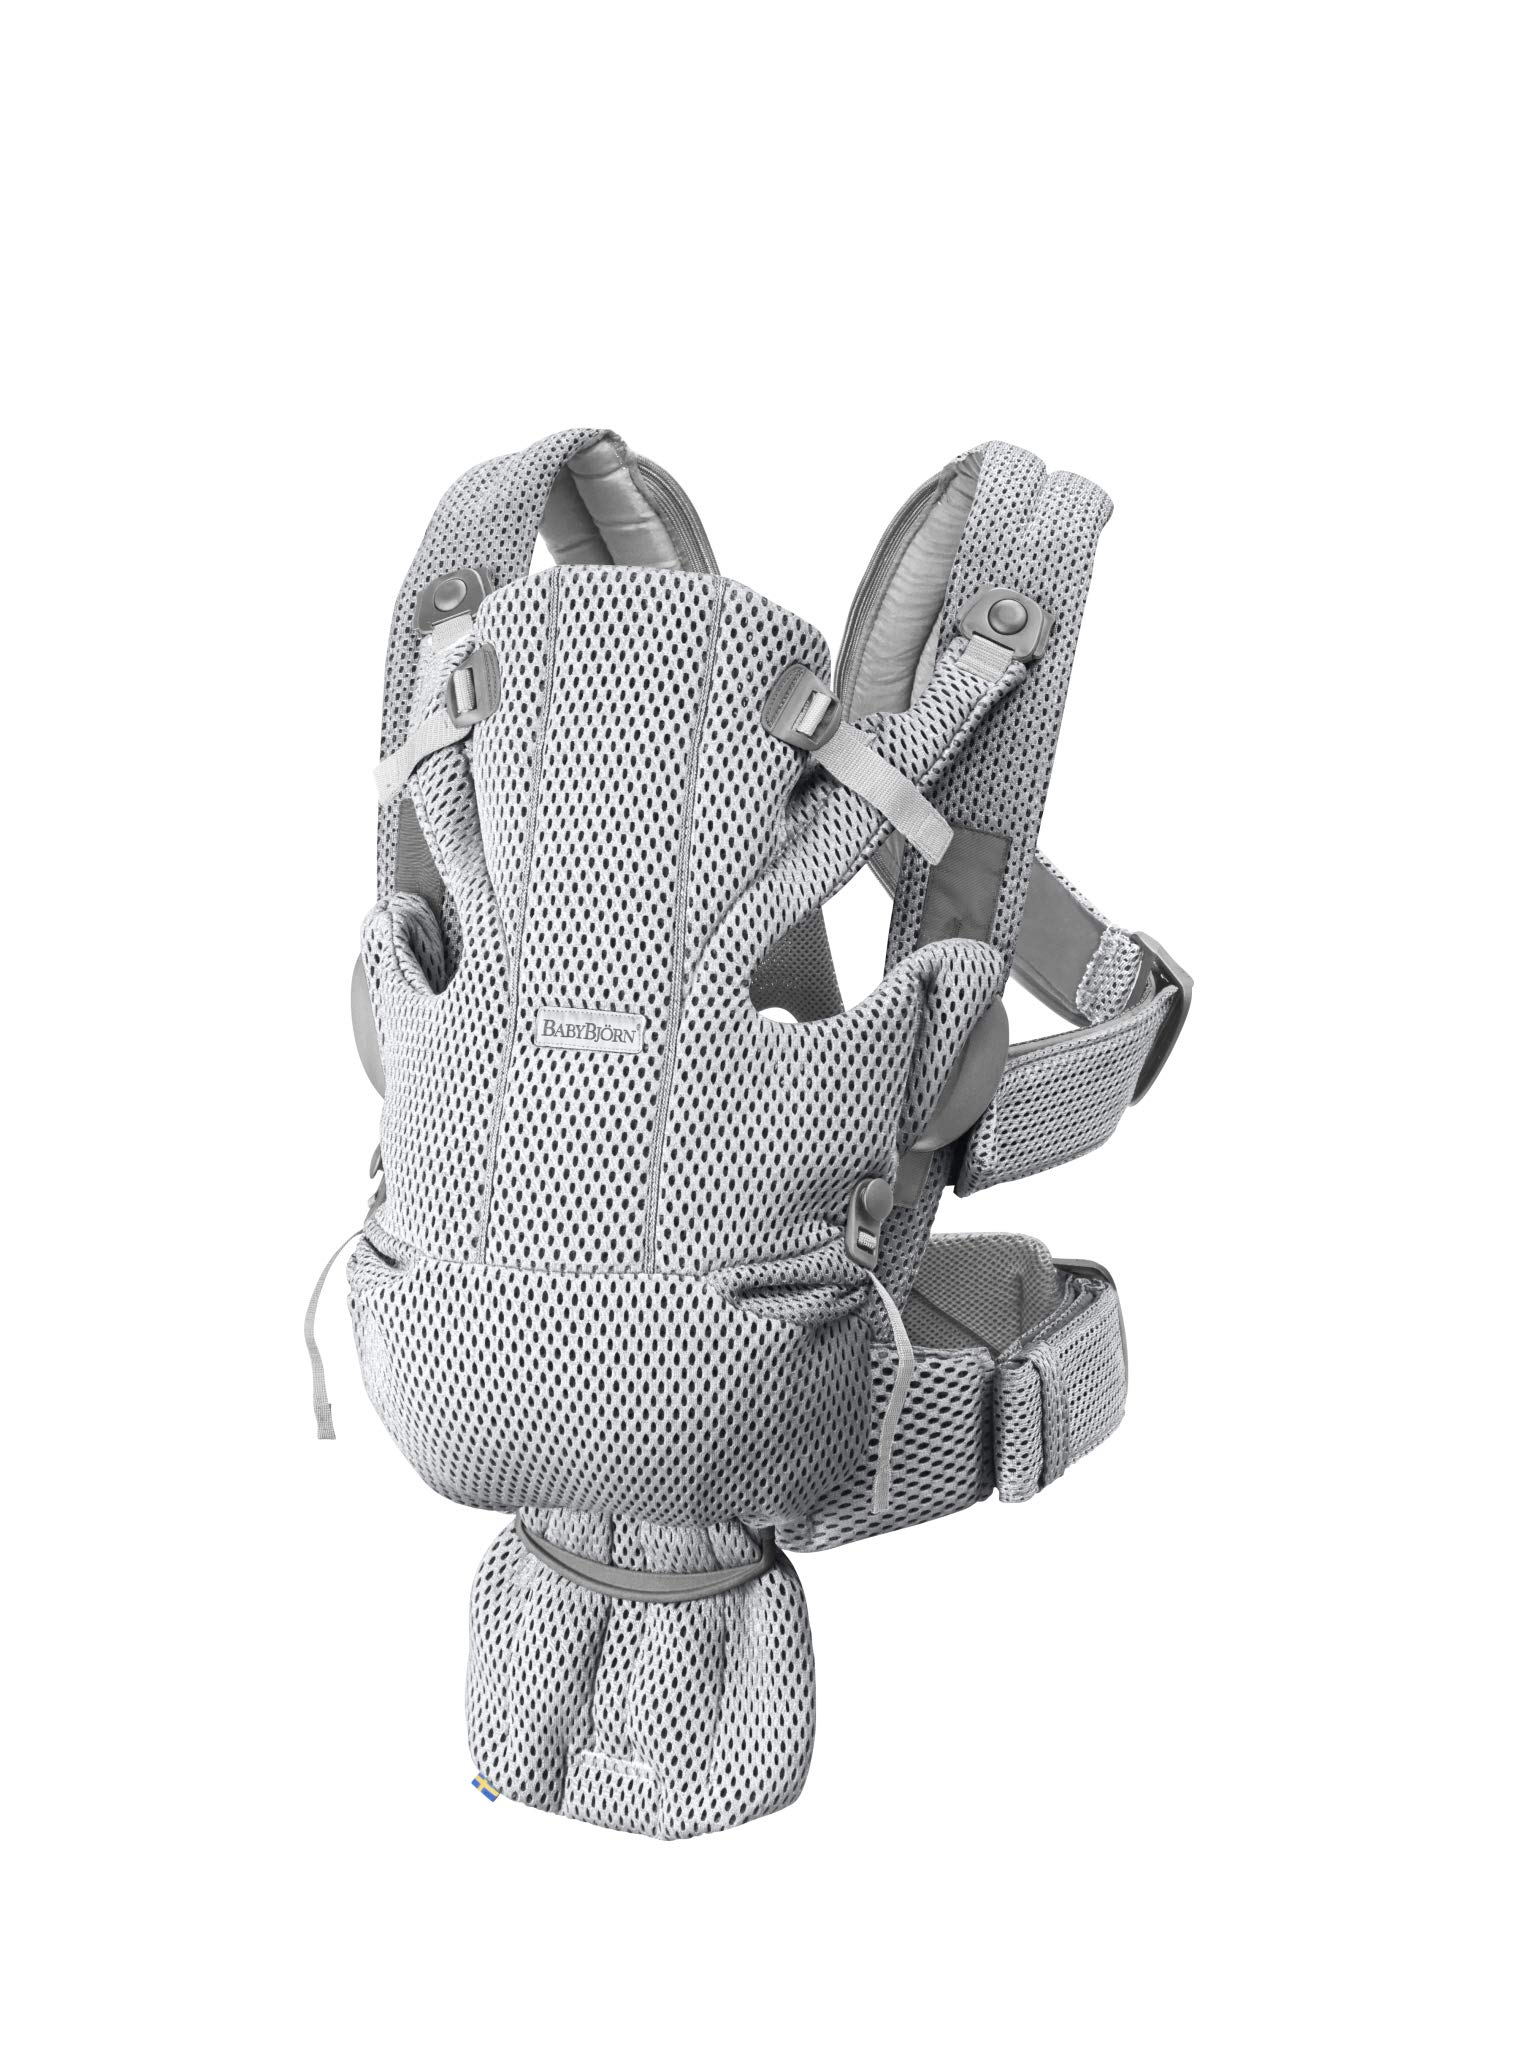 BABYBJÖRN Baby Carrier Move, 3D Mesh, Grey Baby Bjorn Excellent comfort with built-in back support and waist belt Easy to put on and take off Soft and airy design in cool 3D mesh 2